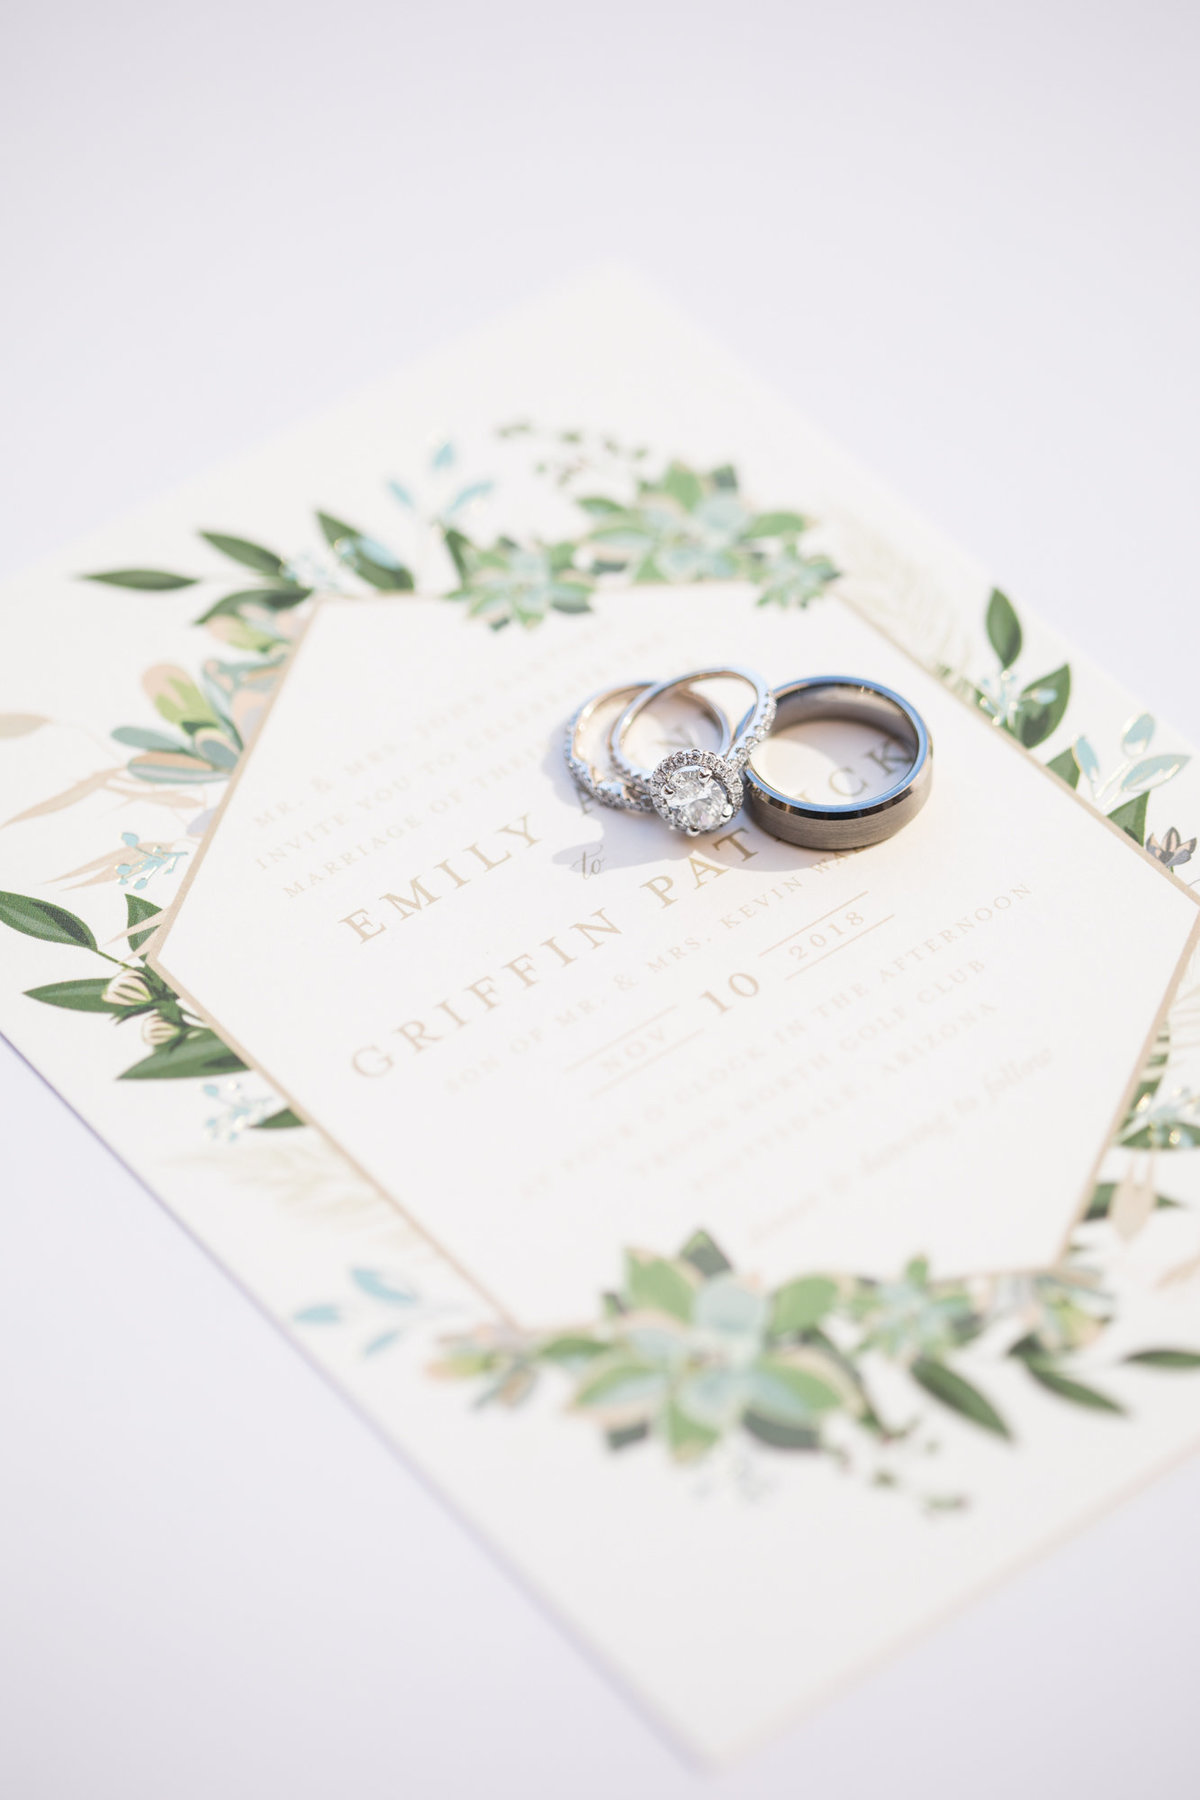 scottsdale-desert-wedding-rings-on-wedding-invitation